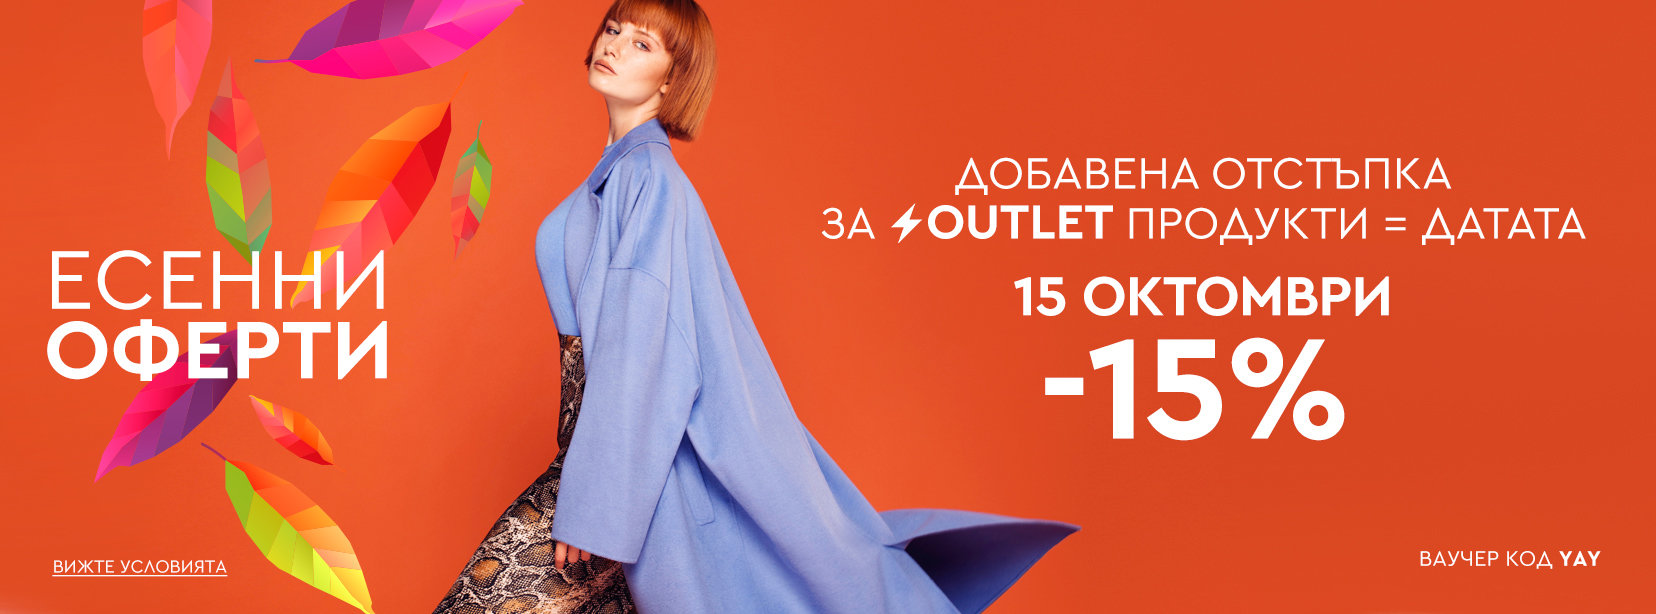 15.10. = -15% за outlet